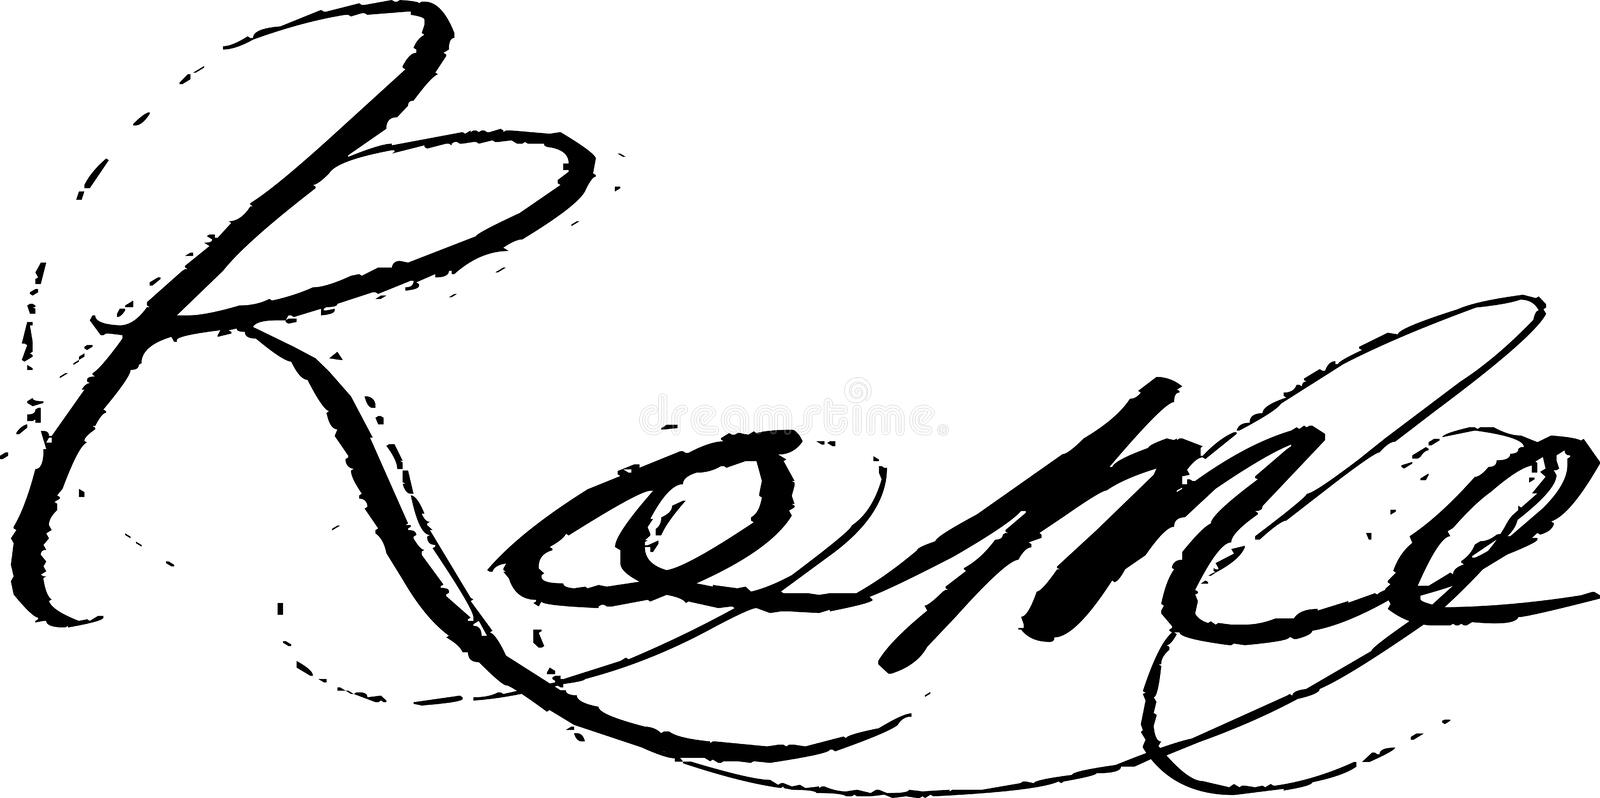 Rome in cursive writing stock photography